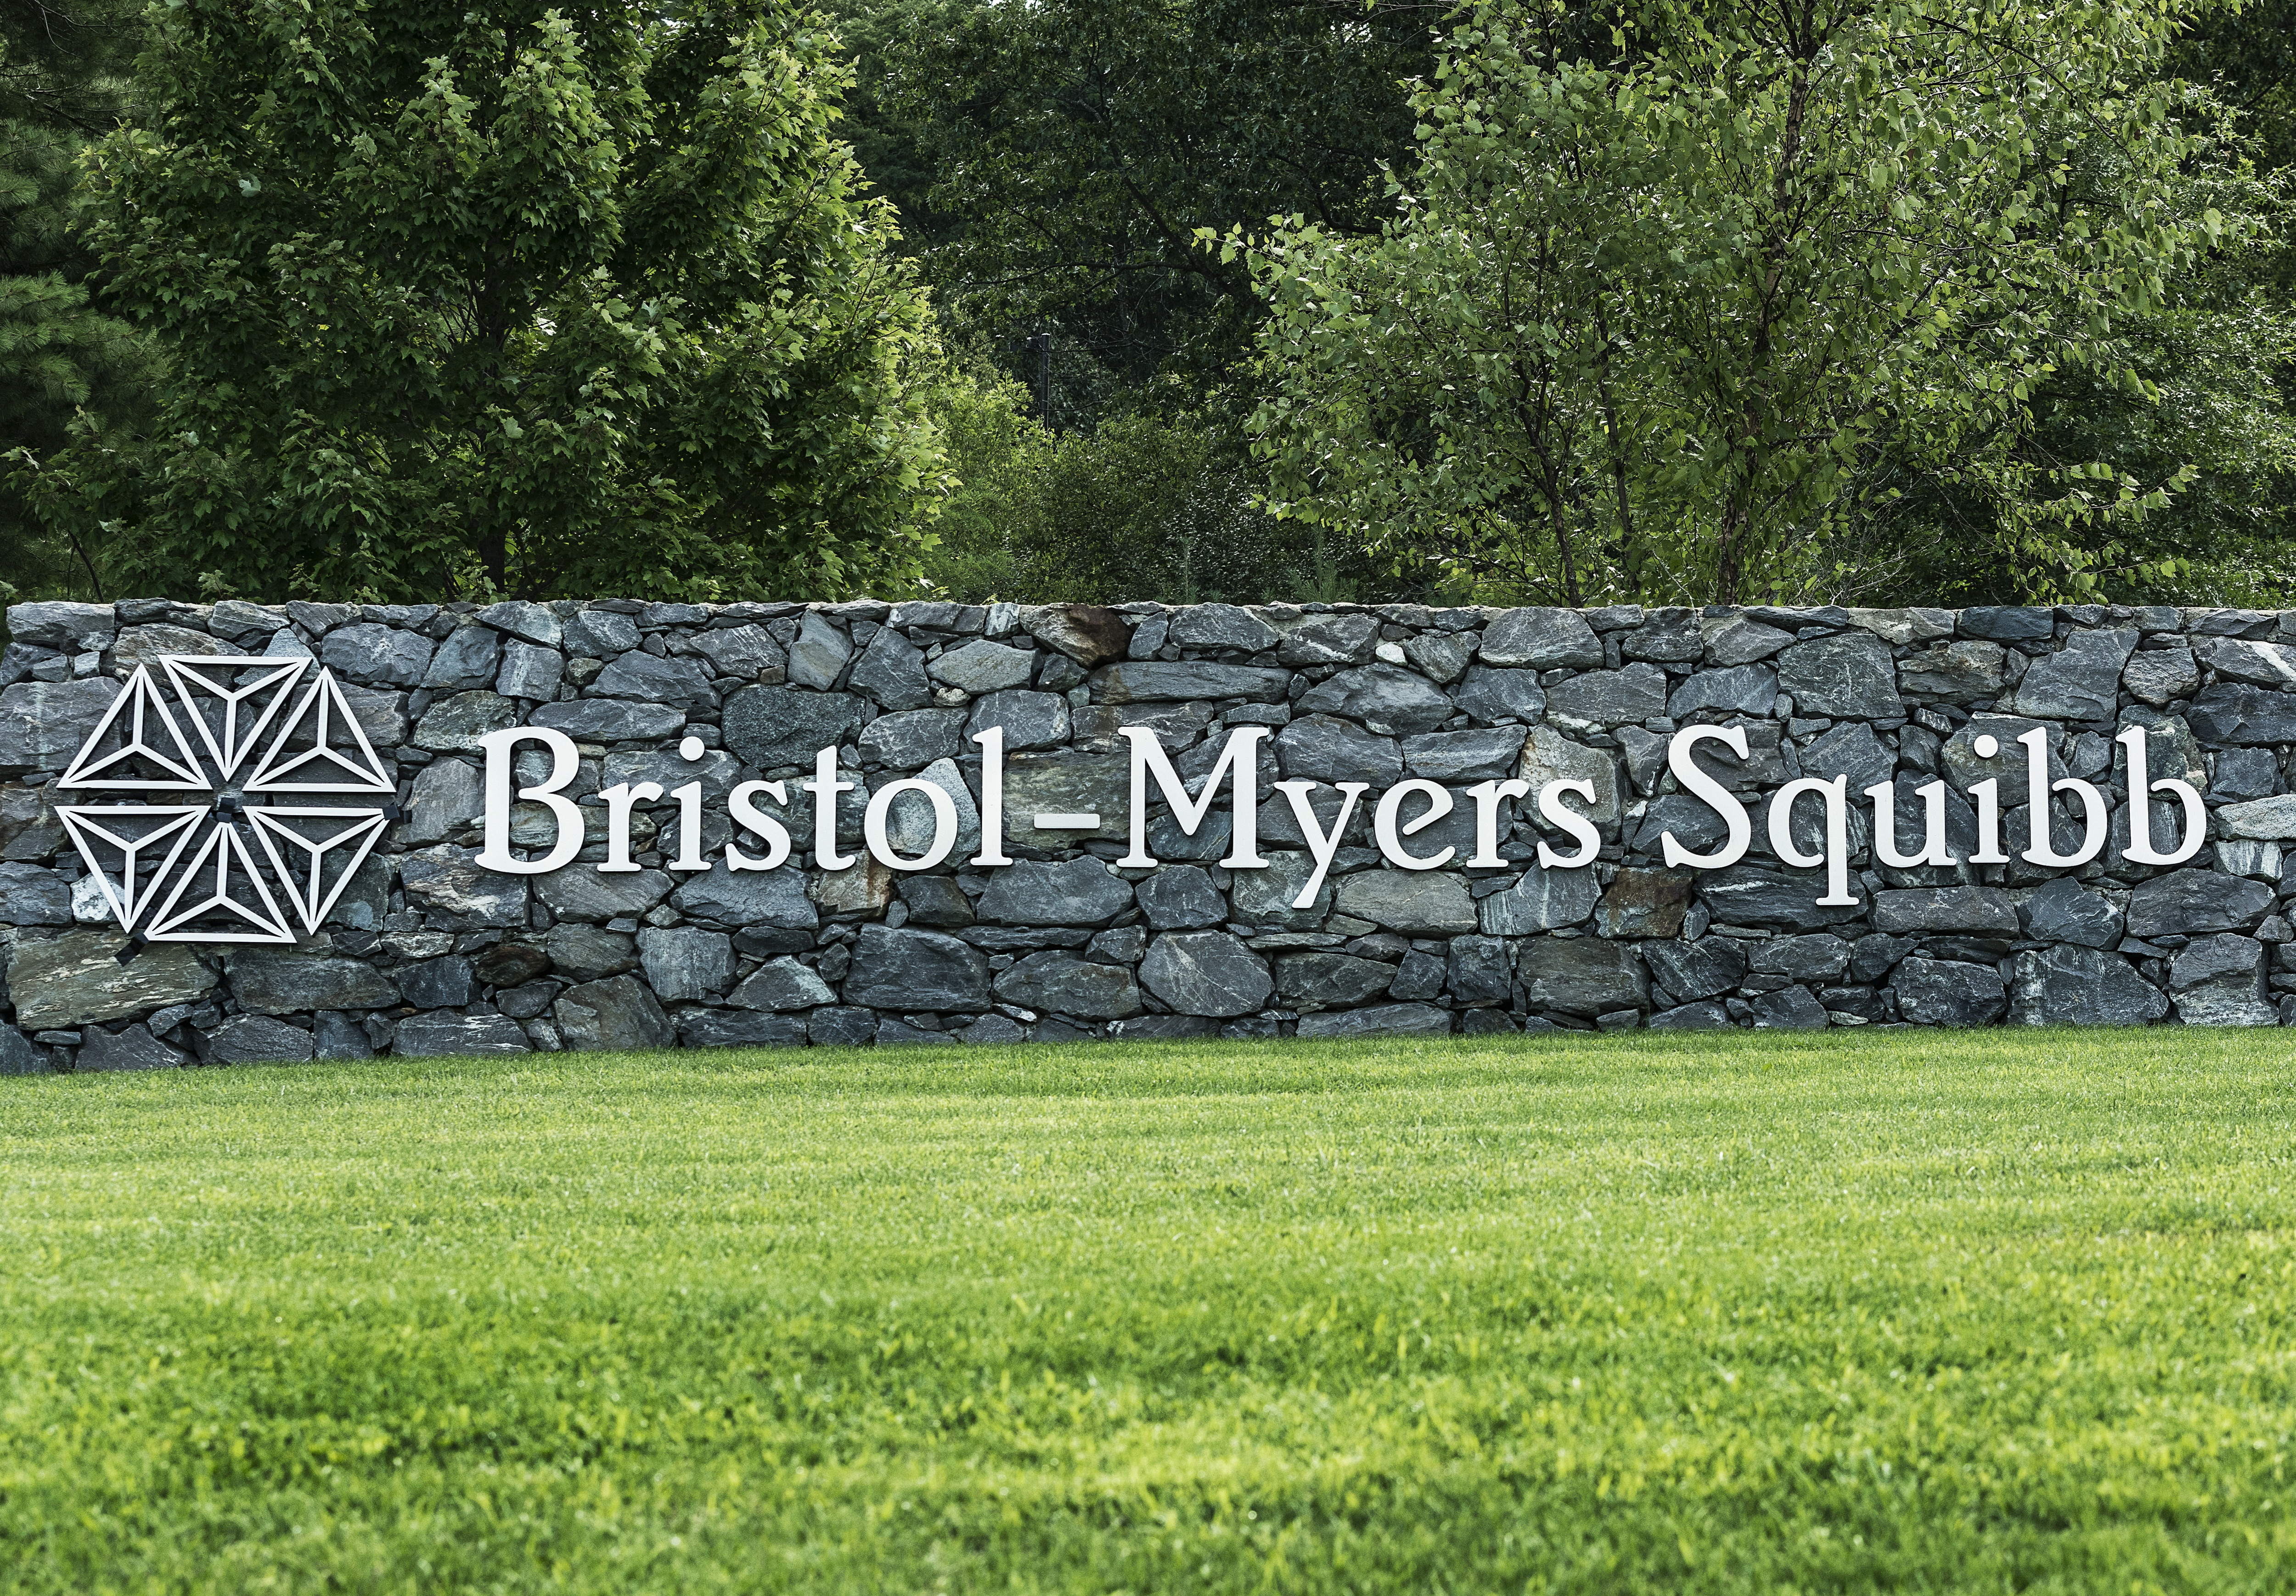 Bristol-Myers Squibb corporate and R & D offices